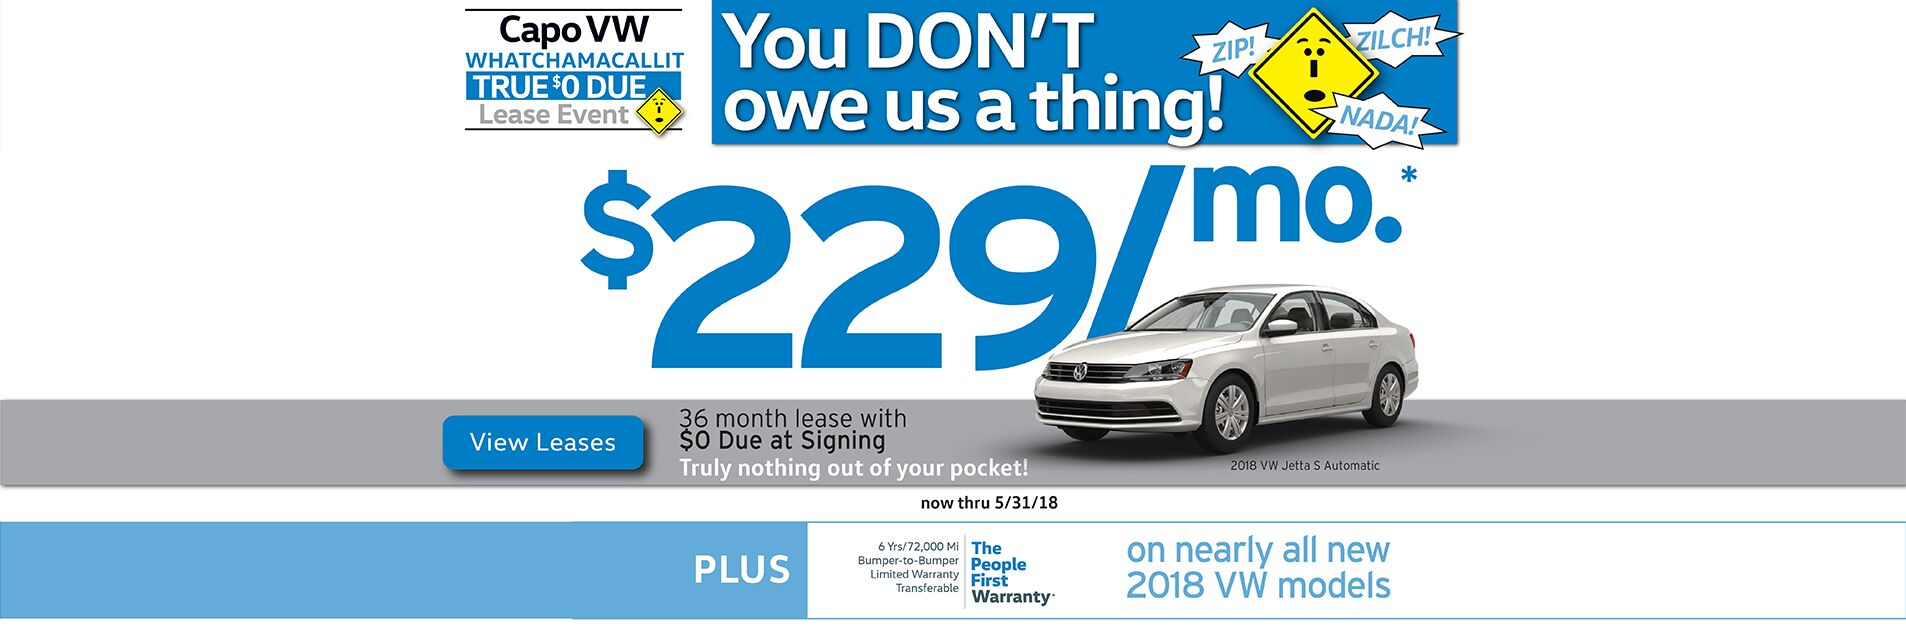 Capo VW Whatchamacallit True $0 Due Lease Event